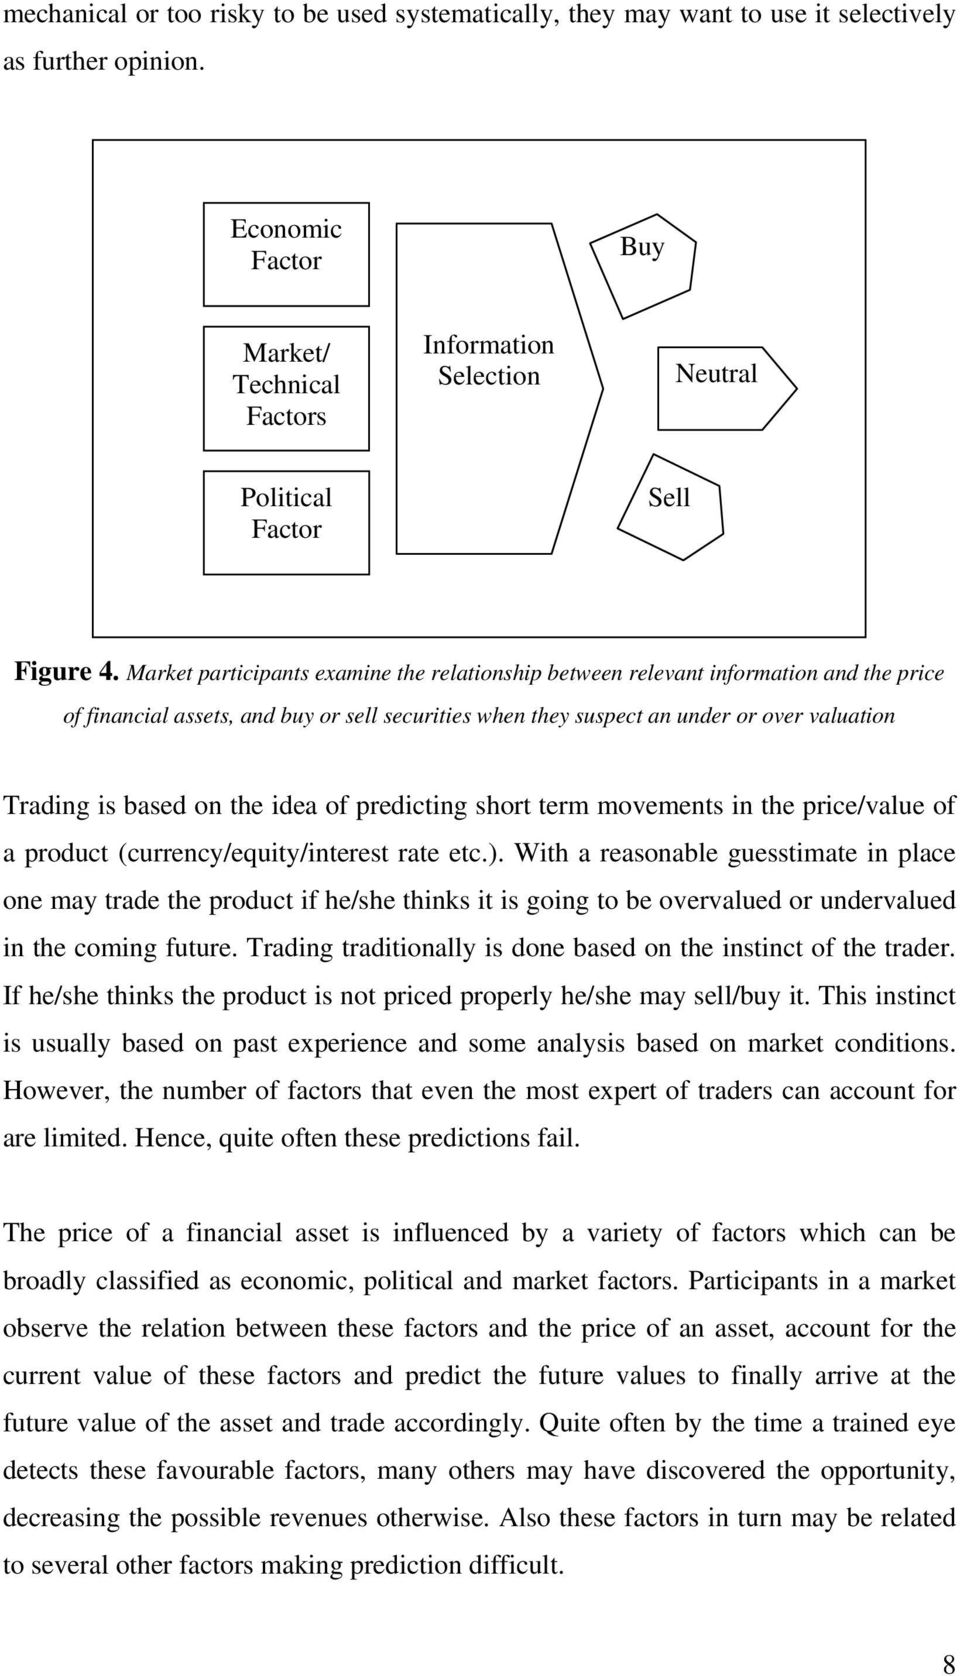 Market participants examine the relationship between relevant information and the price of financial assets, and buy or sell securities when they suspect an under or over valuation Trading is based